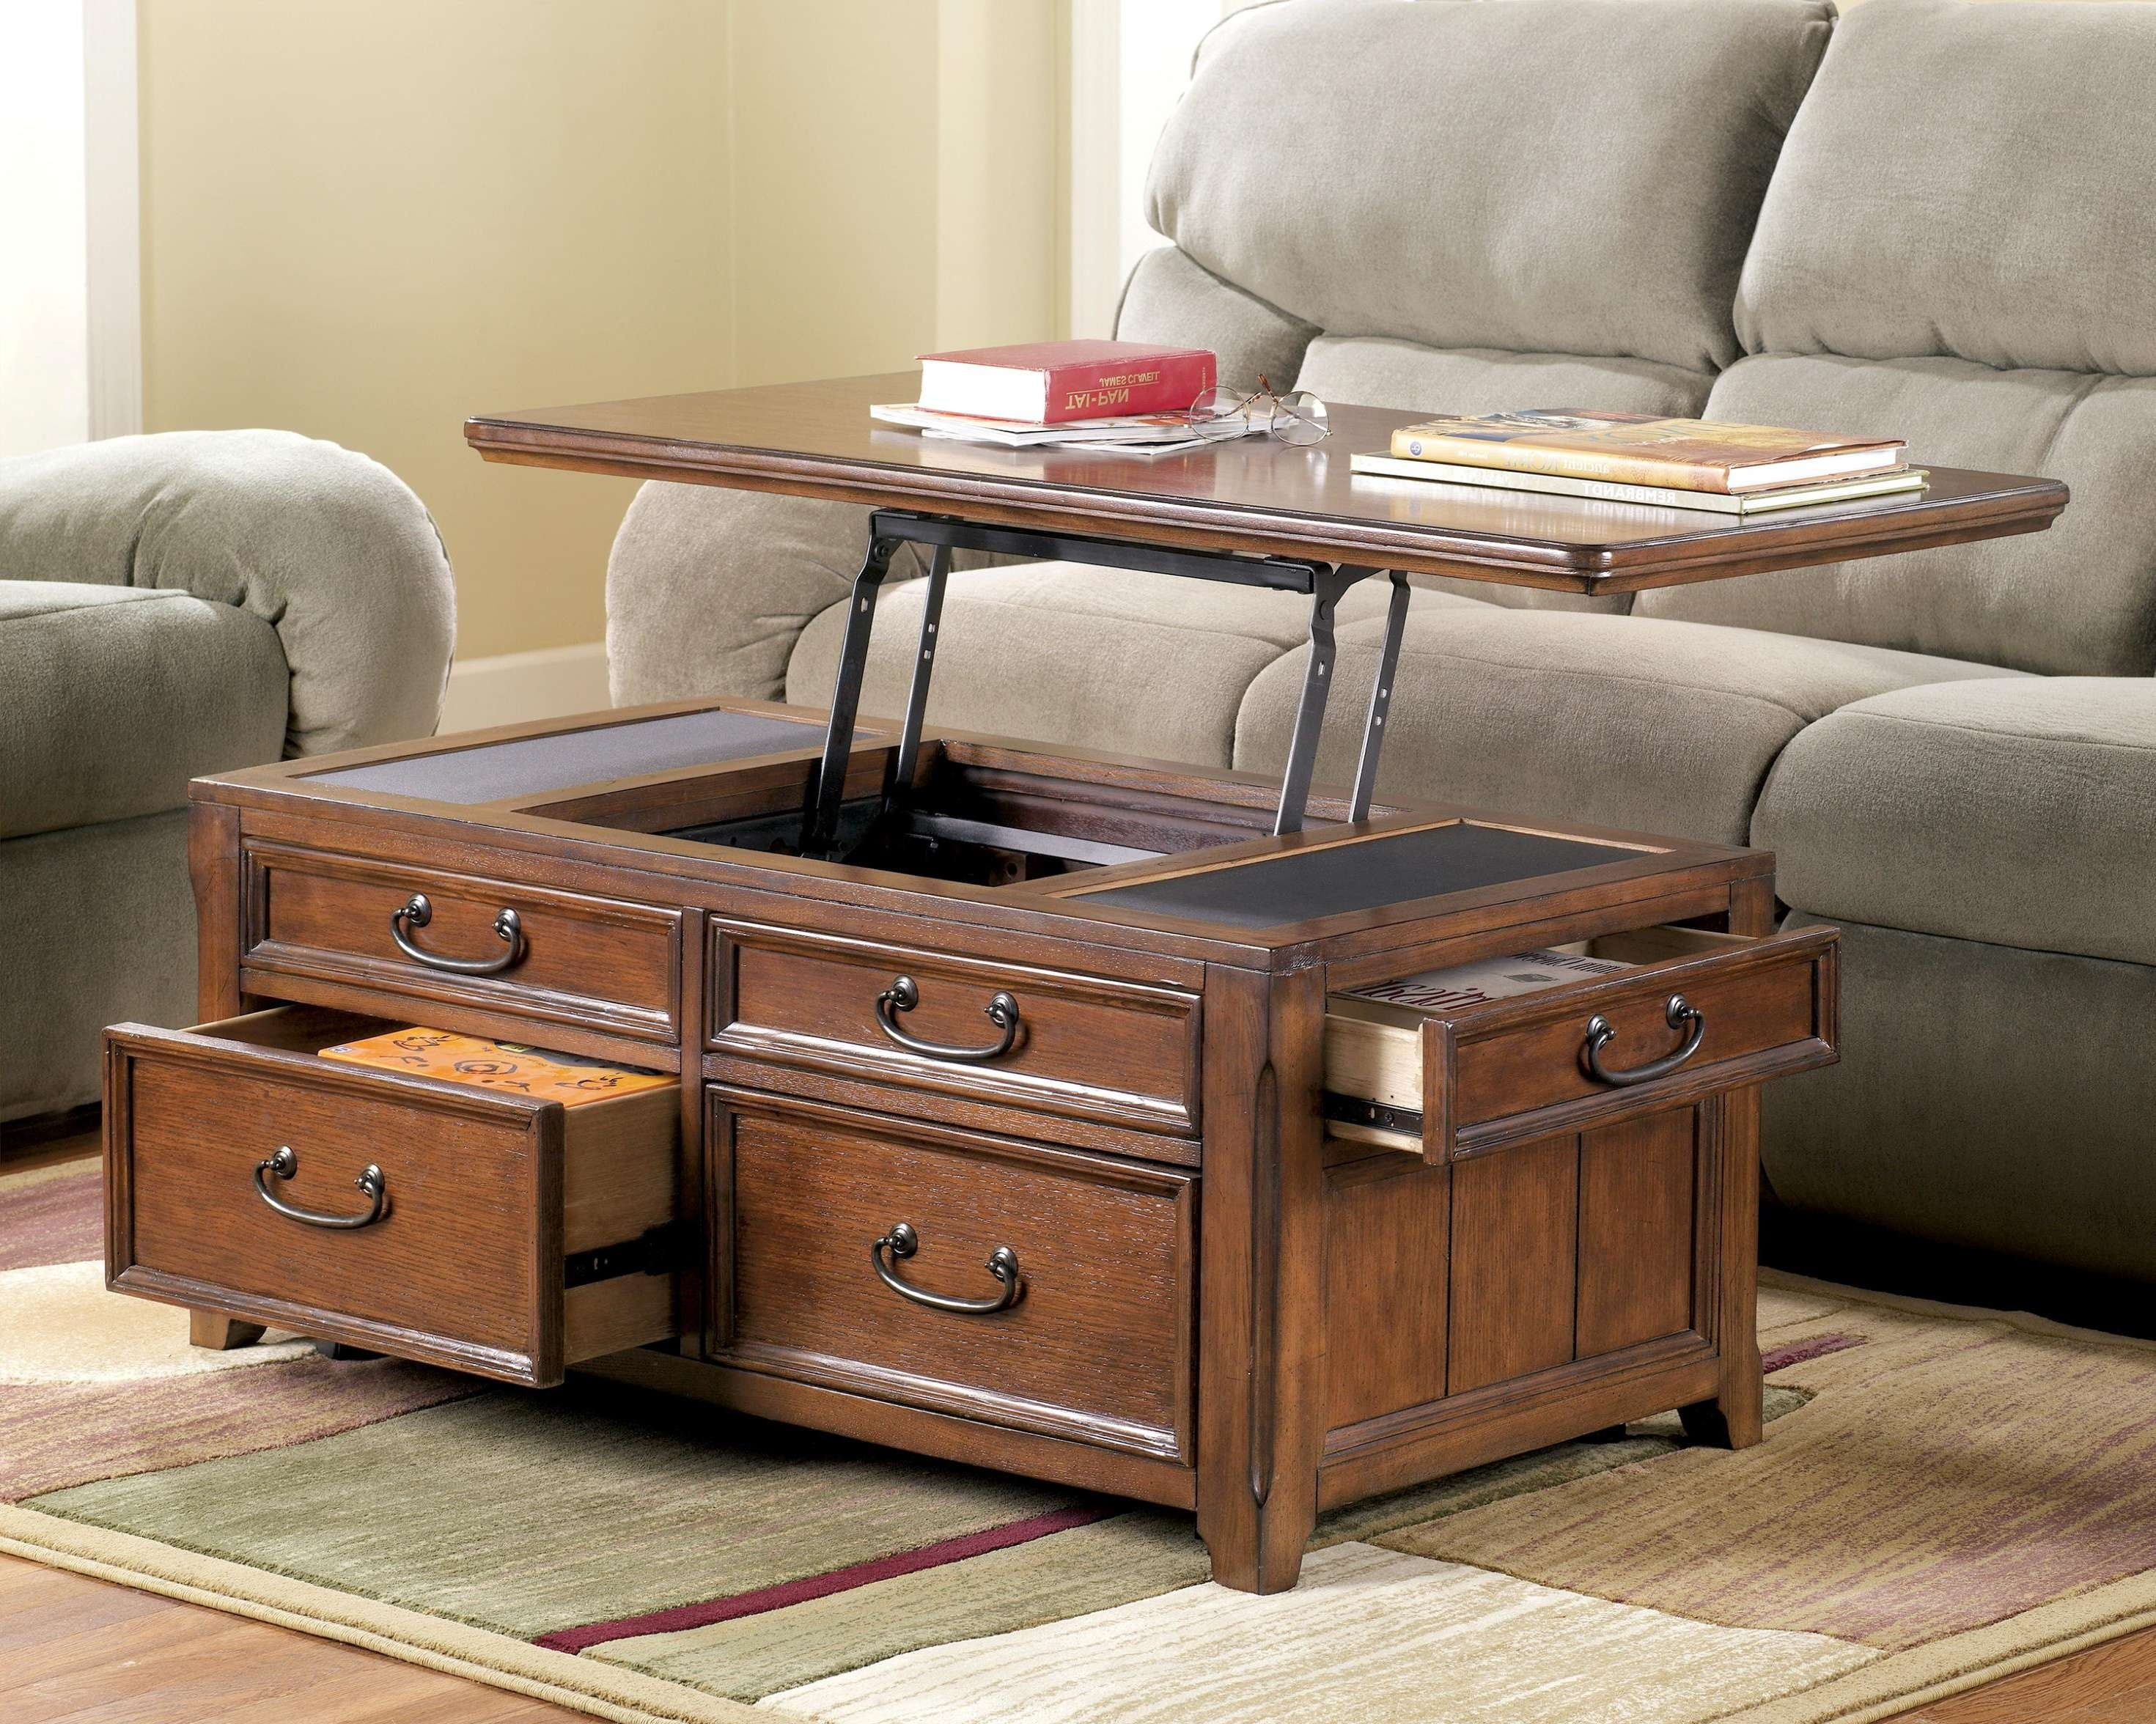 Popular Storage Trunk Coffee Tables Regarding Coffee Table: Mesmerizing Trunk Coffee Table Decorating Ideas (View 12 of 20)